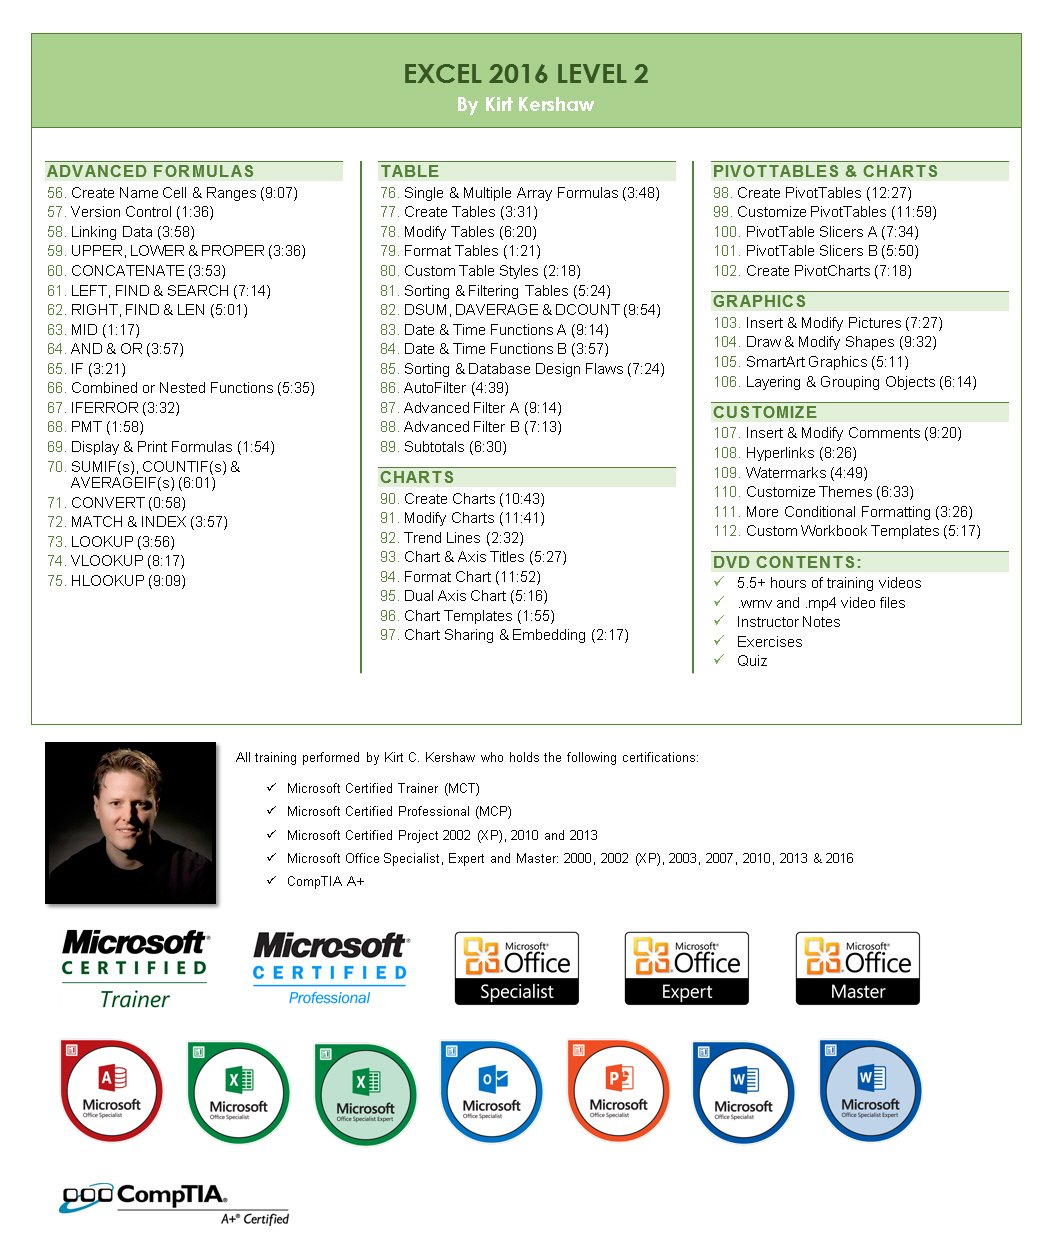 Amazon excel 2016 training videos 15 hours of excel 2016 amazon excel 2016 training videos 15 hours of excel 2016 training by microsoft office specialist expert and master and microsoft certified trainer 1betcityfo Image collections